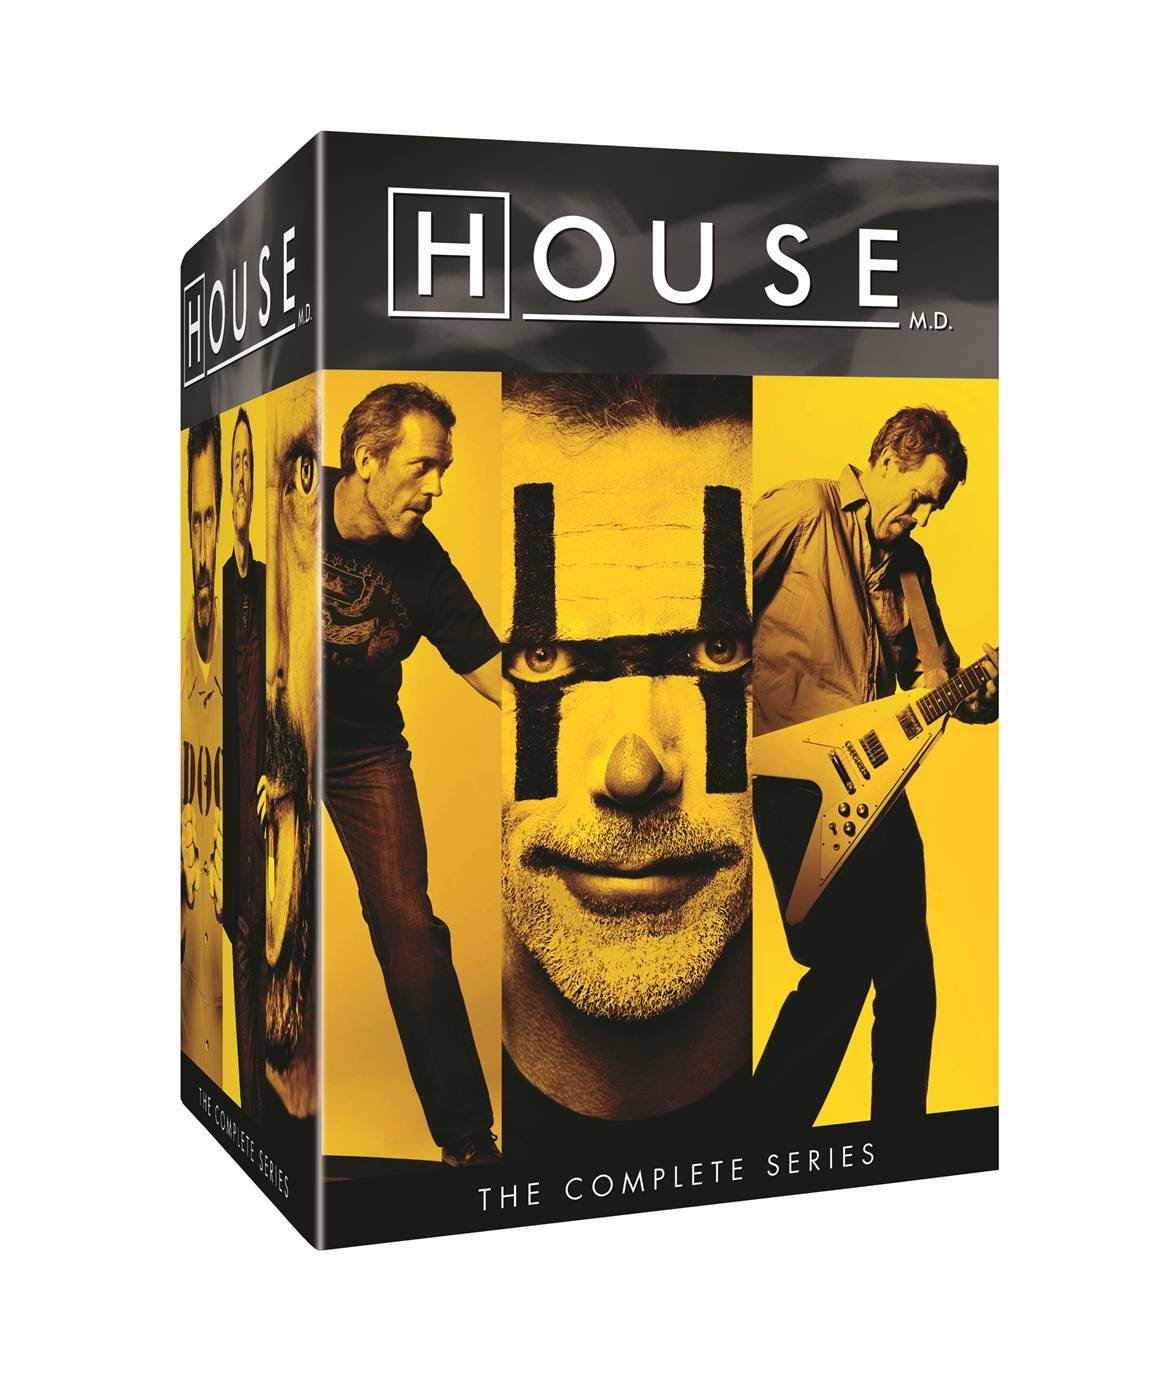 House: The Complete Series $83.99